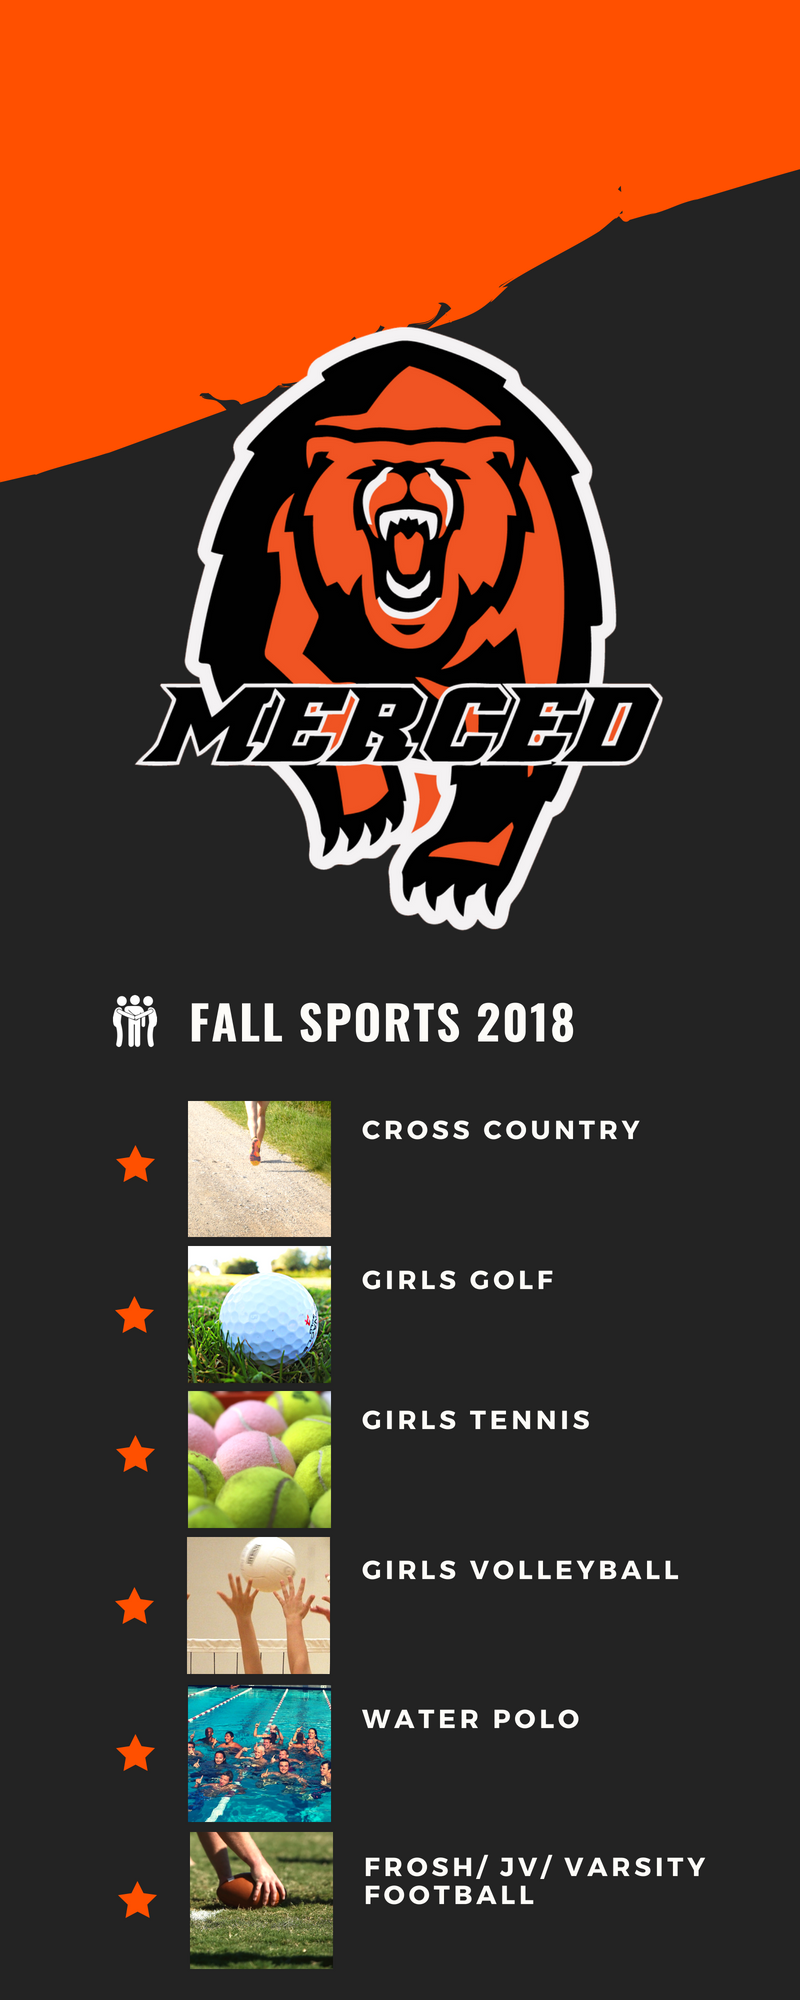 Fall Sports: XC, Girls Golf, Girls Tennis, Girls, Volleyball, Water Polo, and Football.